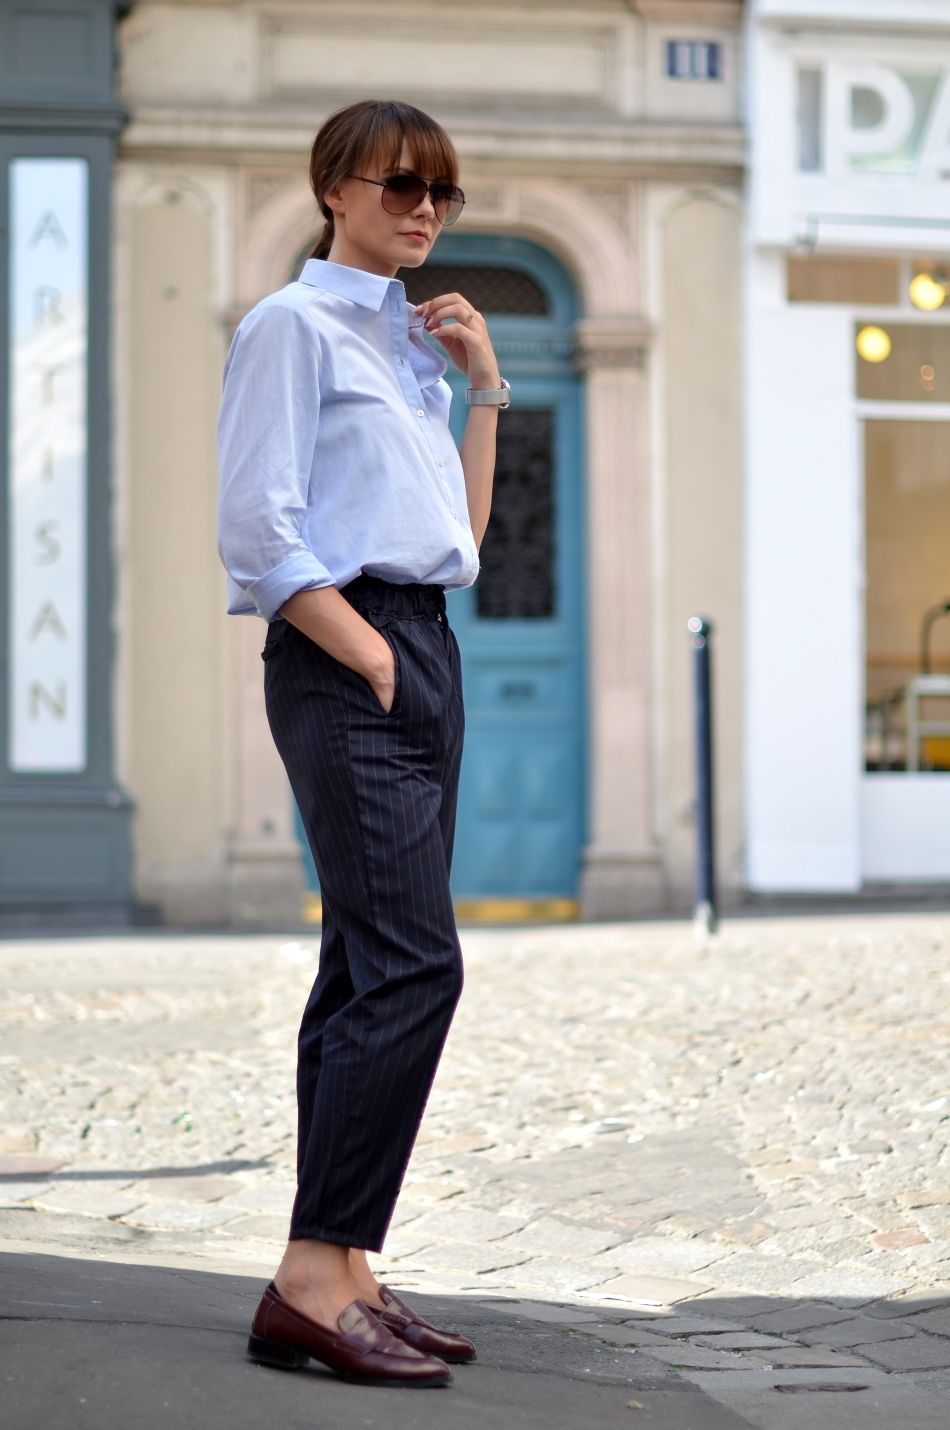 Pale blue shirt, pinstripe pants and loafers. Via Kamila Leciak Shirt: Promod, Loafers: Parfois, Sunglasses - Fossil